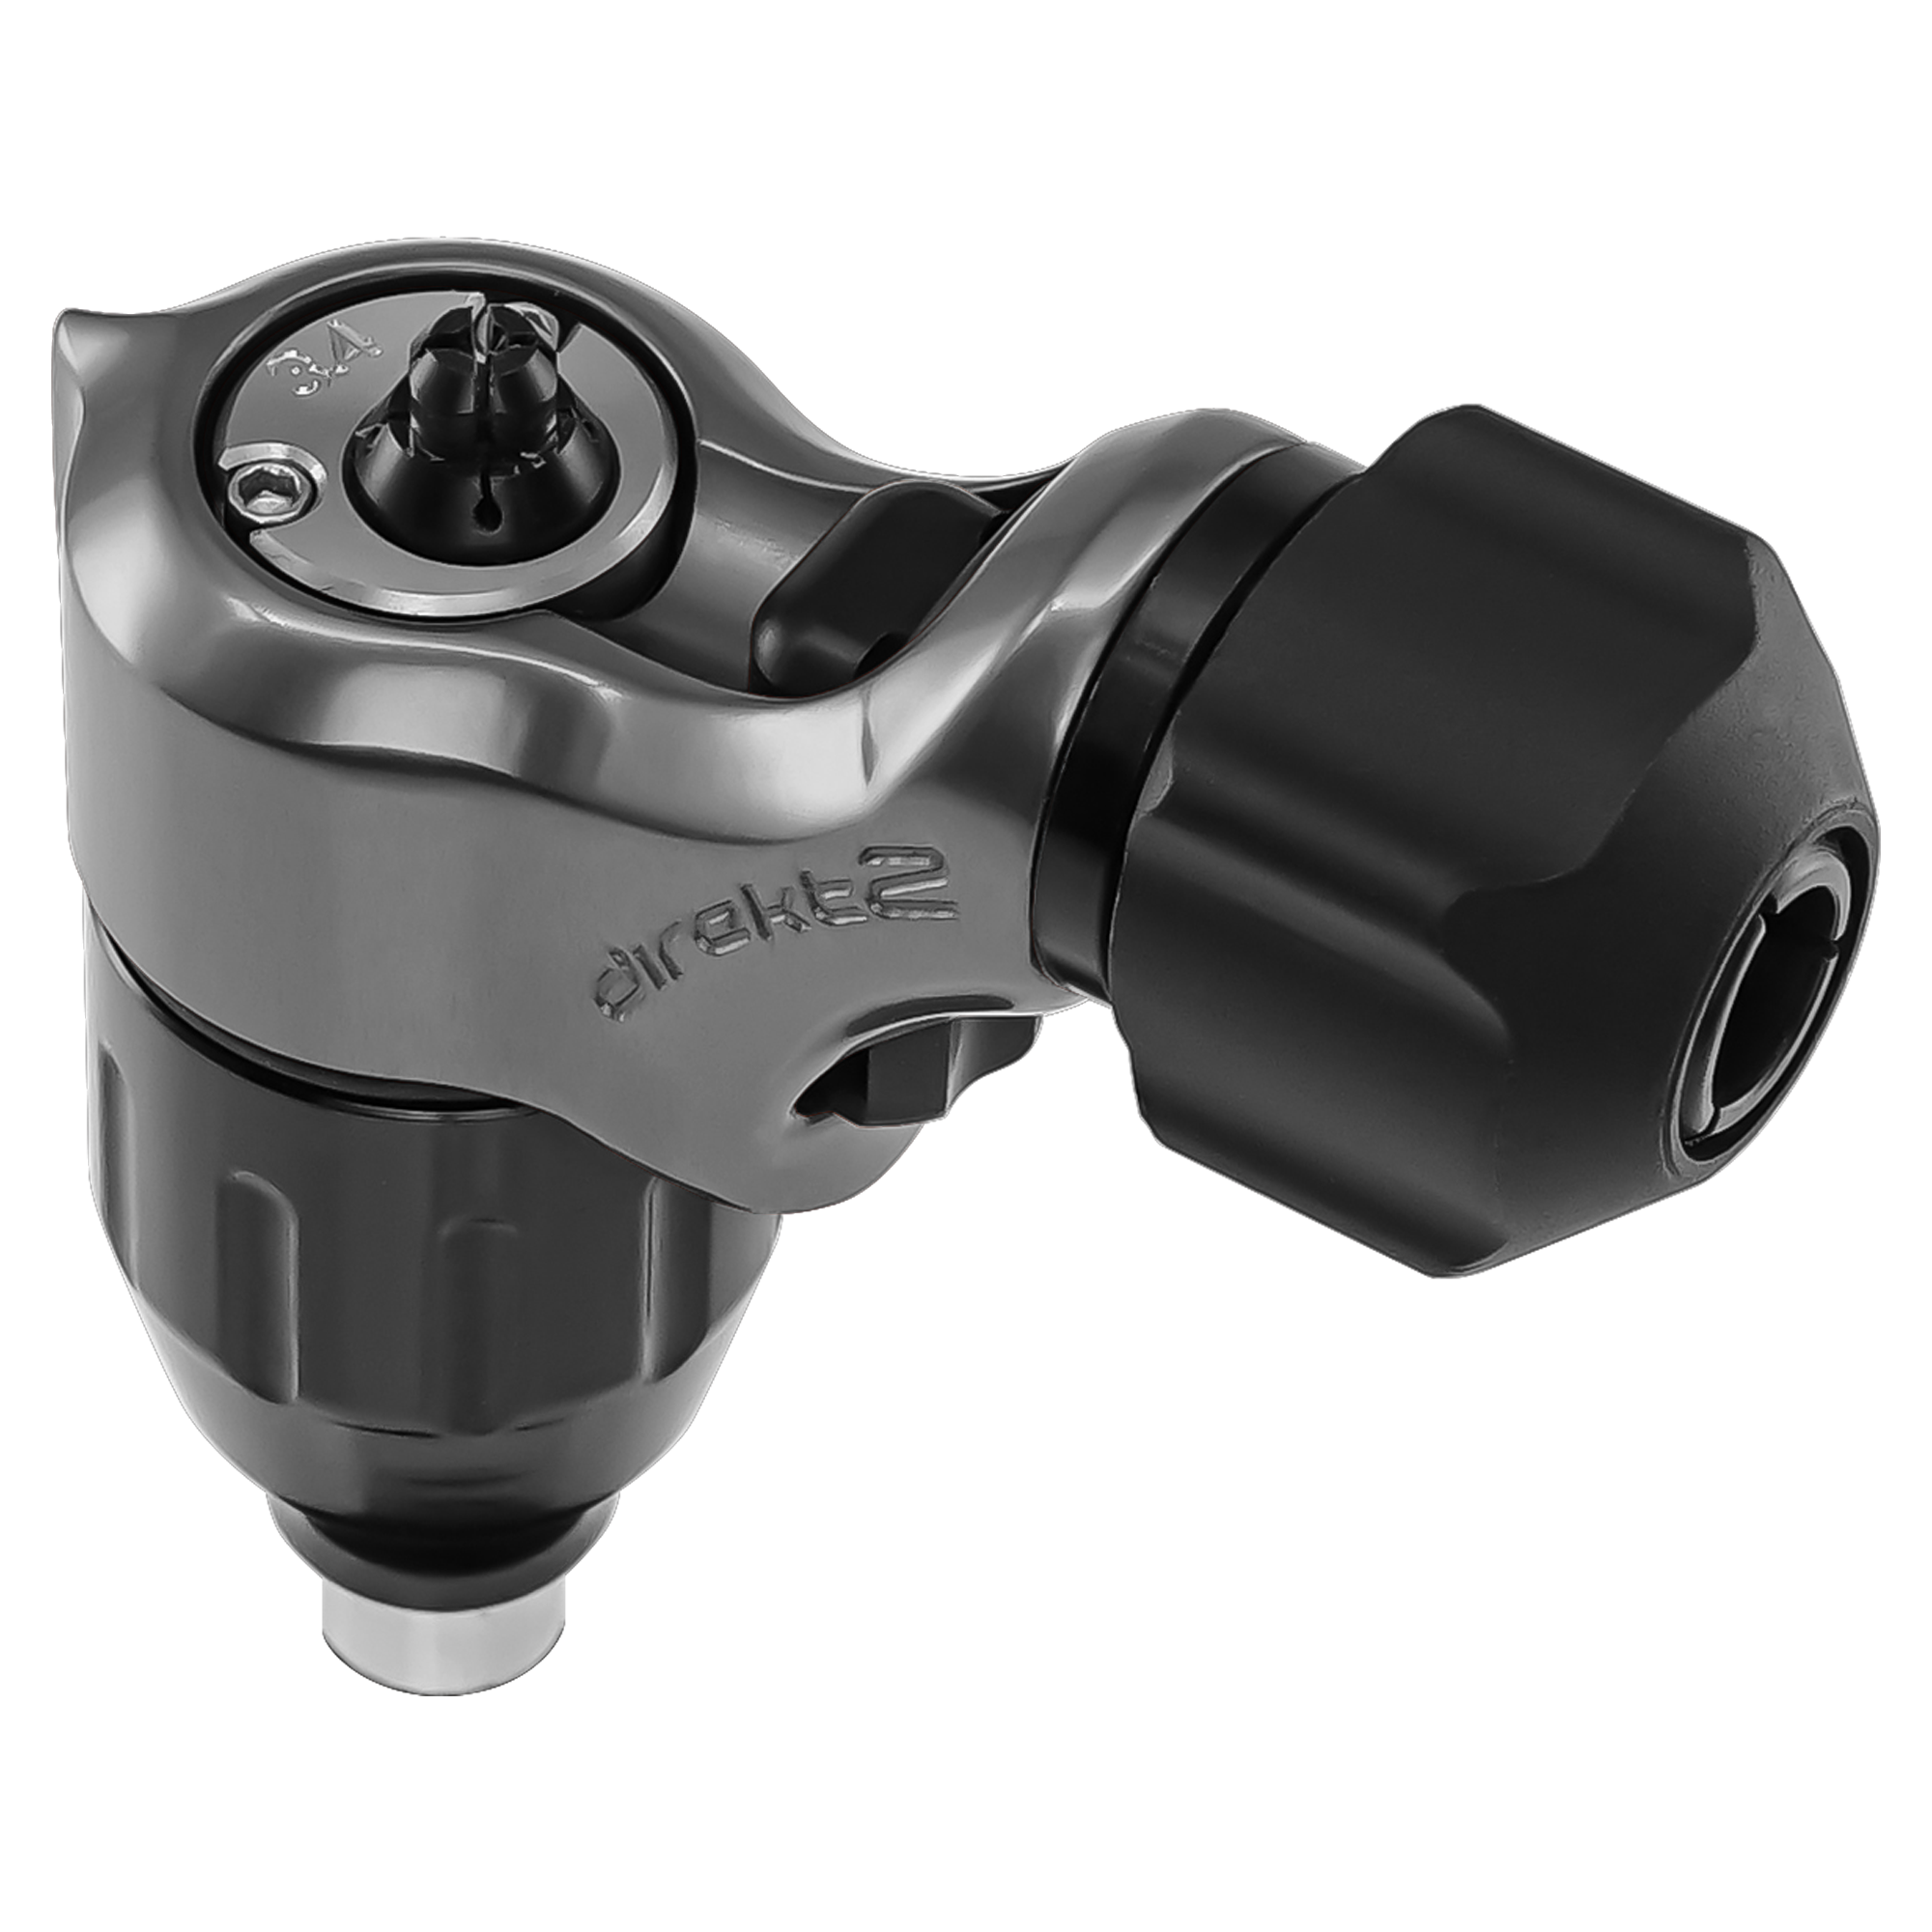 Spektra Direkt2 tattoo machine in gunmetal with a view of the plug and stroke cap